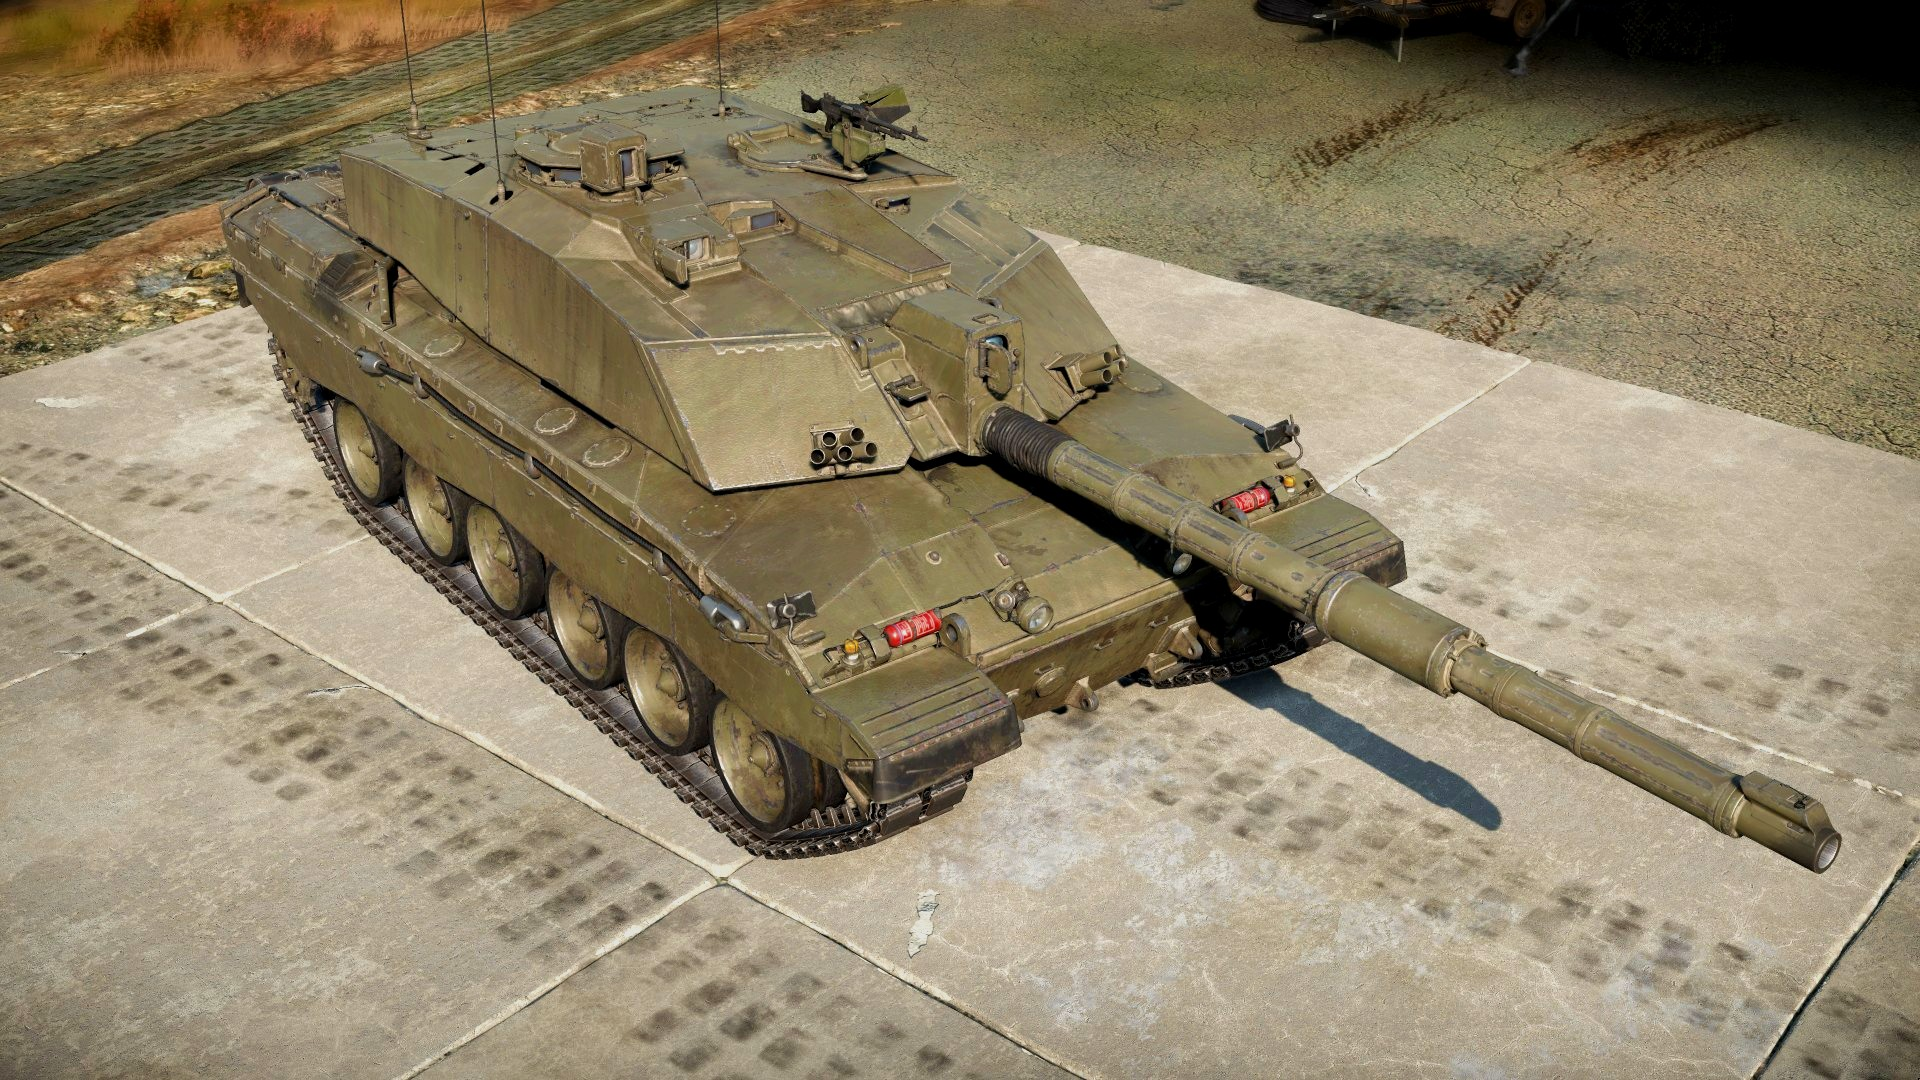 War Thunder devs won't use classified documents posted in forums to tweak tanks